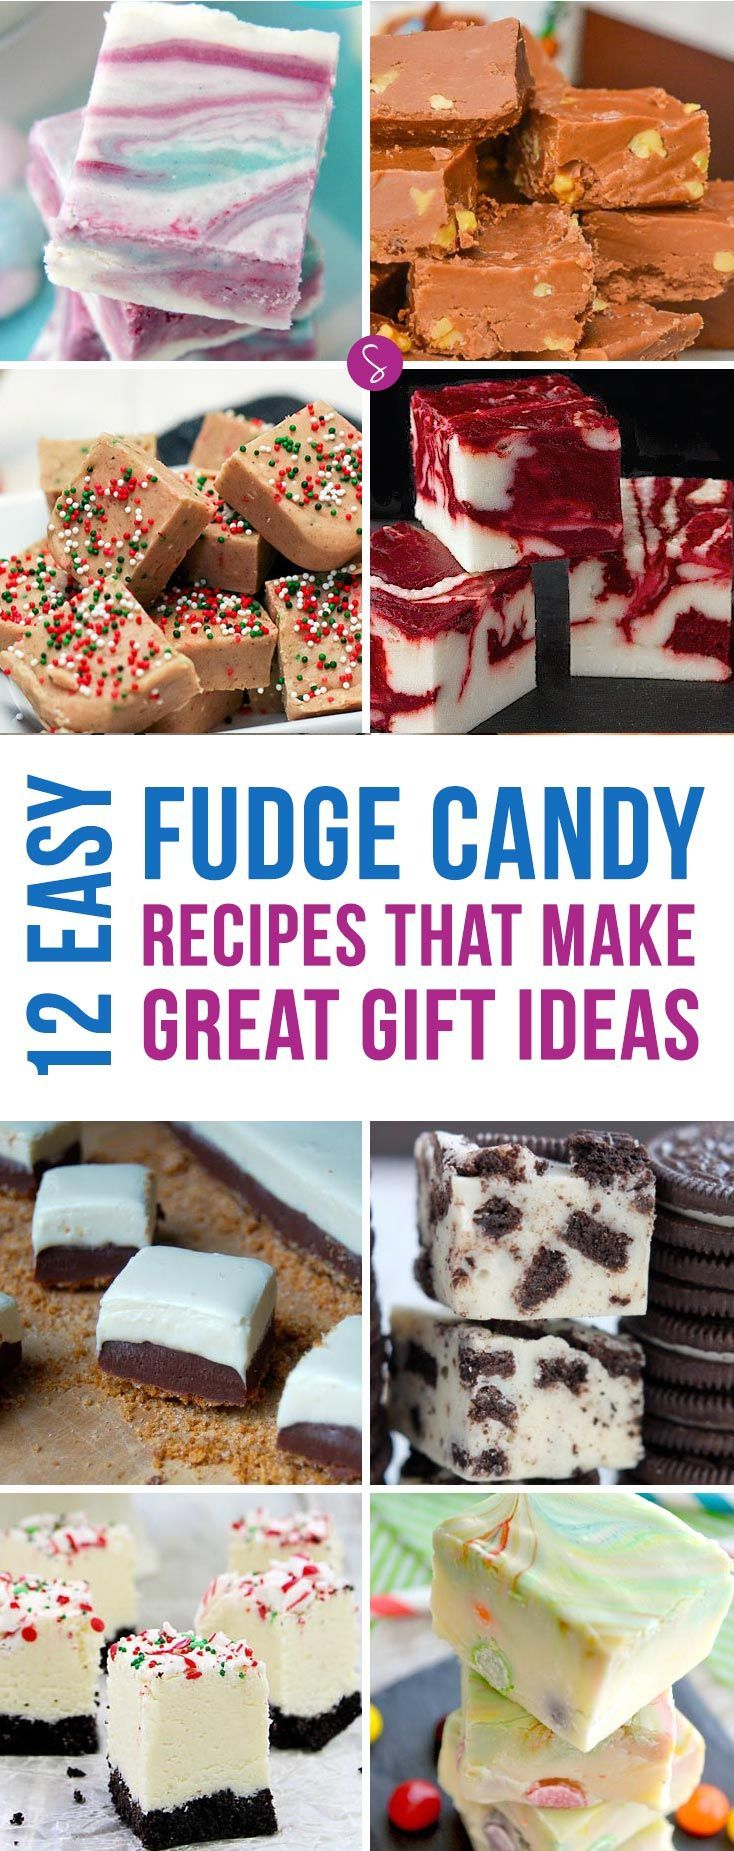 Homemade Fudge Candy Recipes that Make Wonderful Valentine's Gifts ...